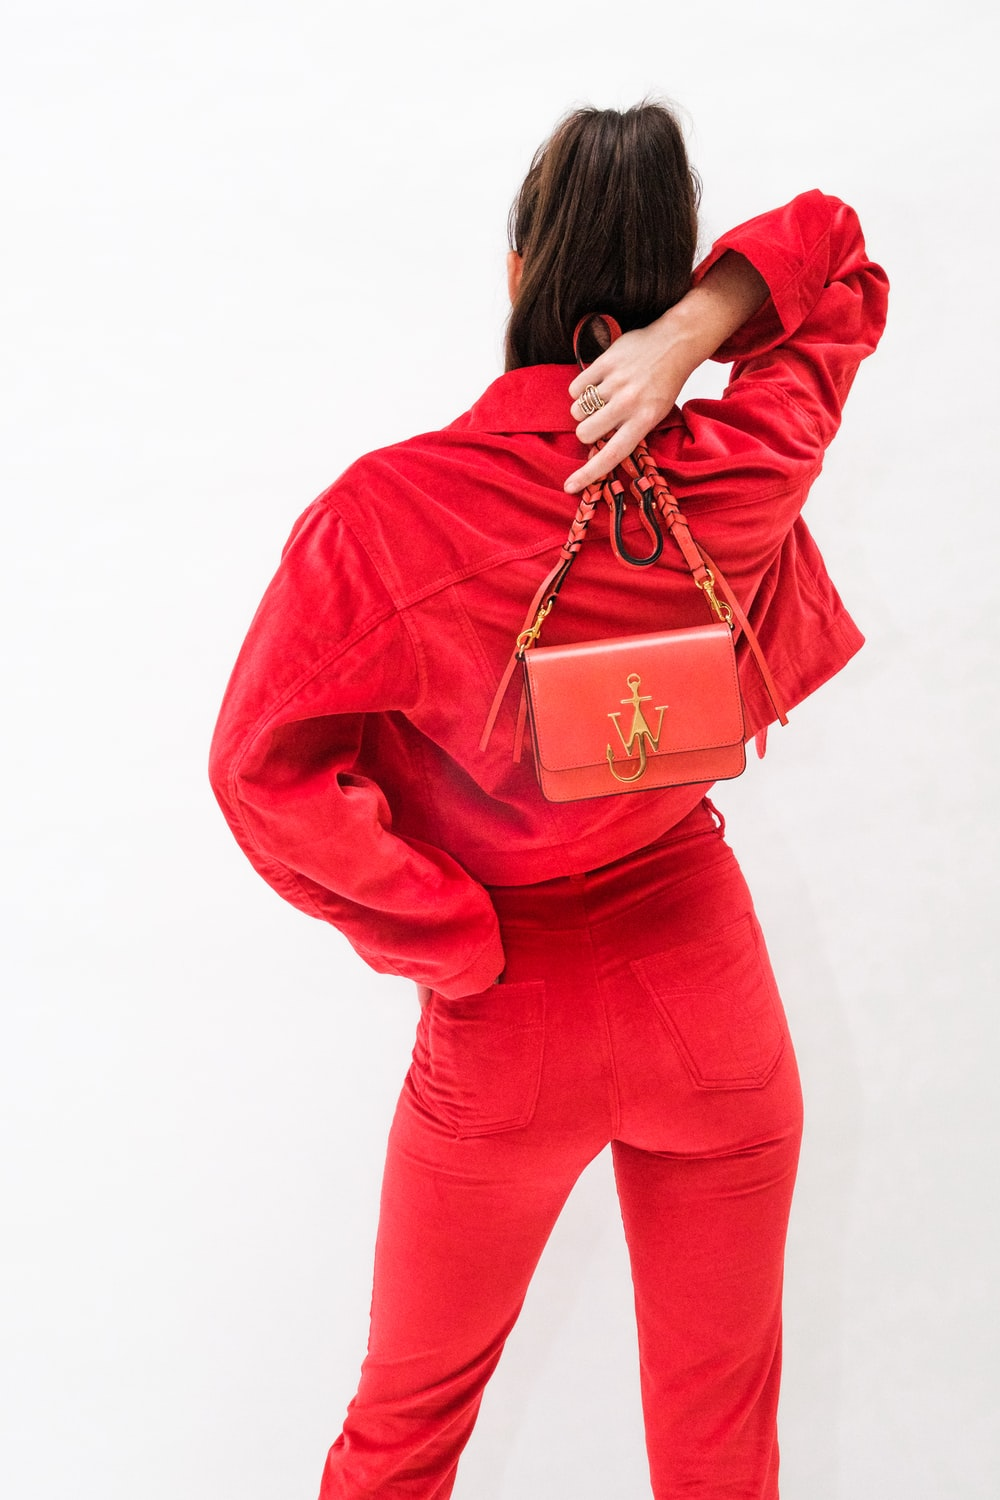 woman in red long sleeve shirt and red pants carrying brown leather handbag